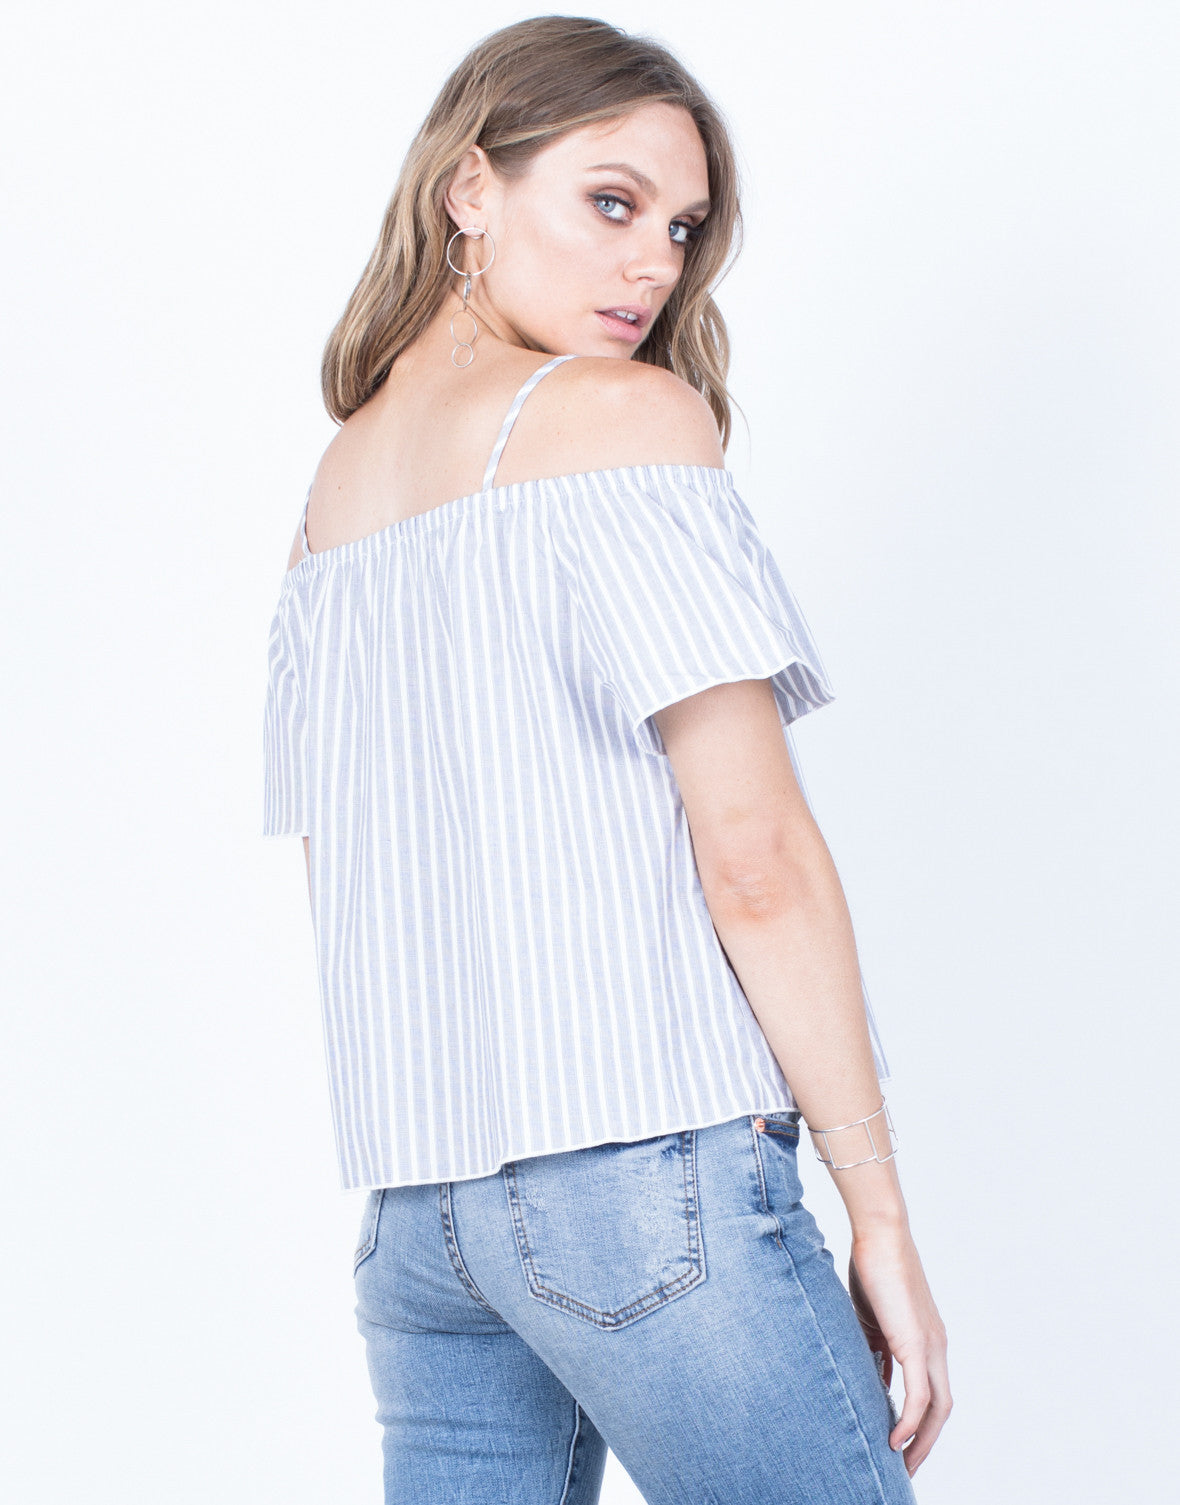 Back View of White Lines Striped Top